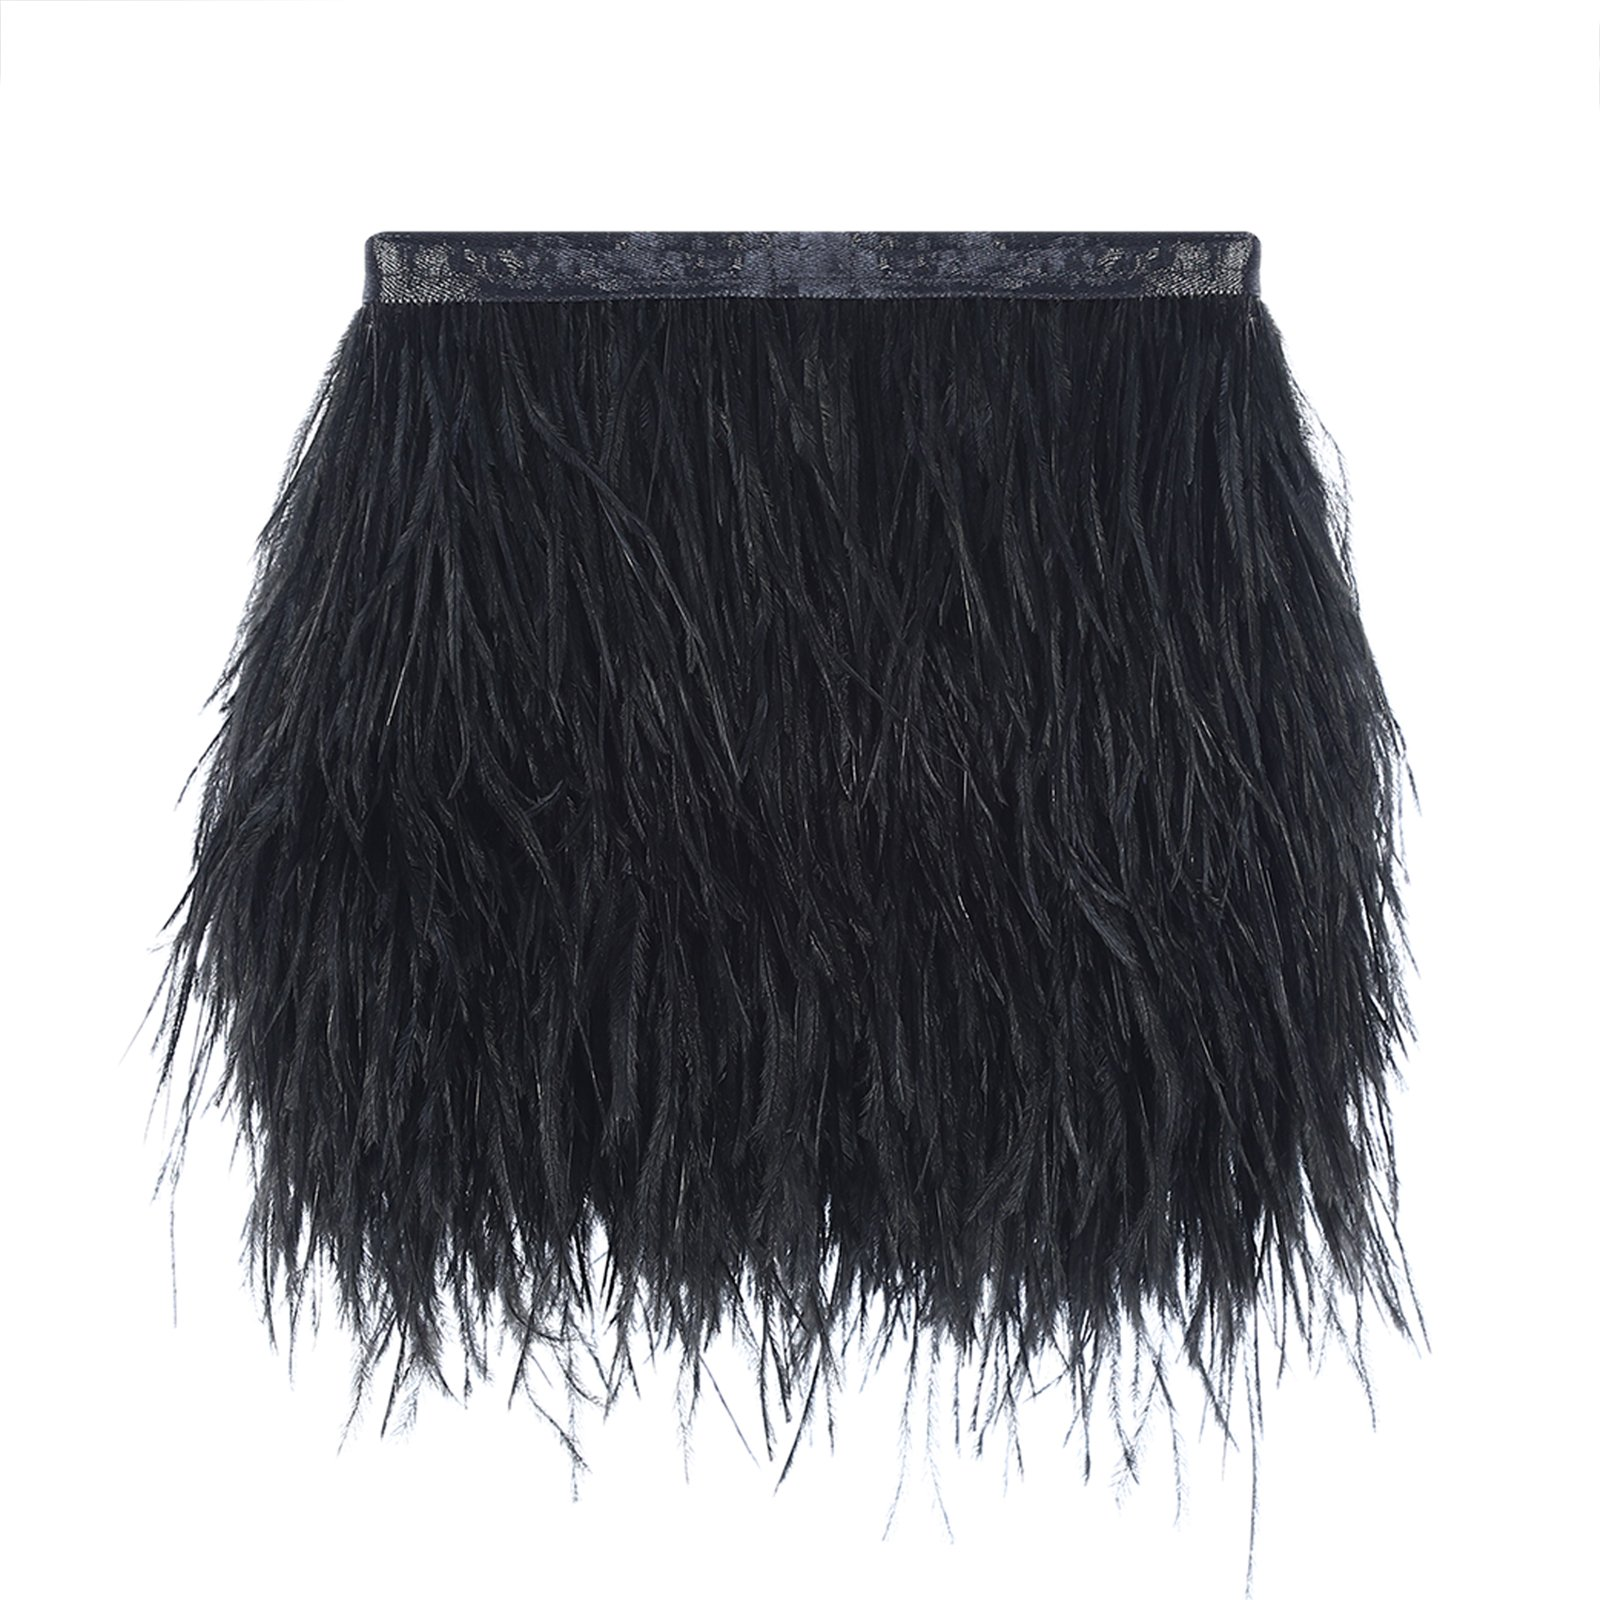 10 Yards Ostrich Feather Trim Fringe on Satin Header 4-6inch in Width for Wedding Sewing Crafts Costumes Decoration (Black) by AWAYTR